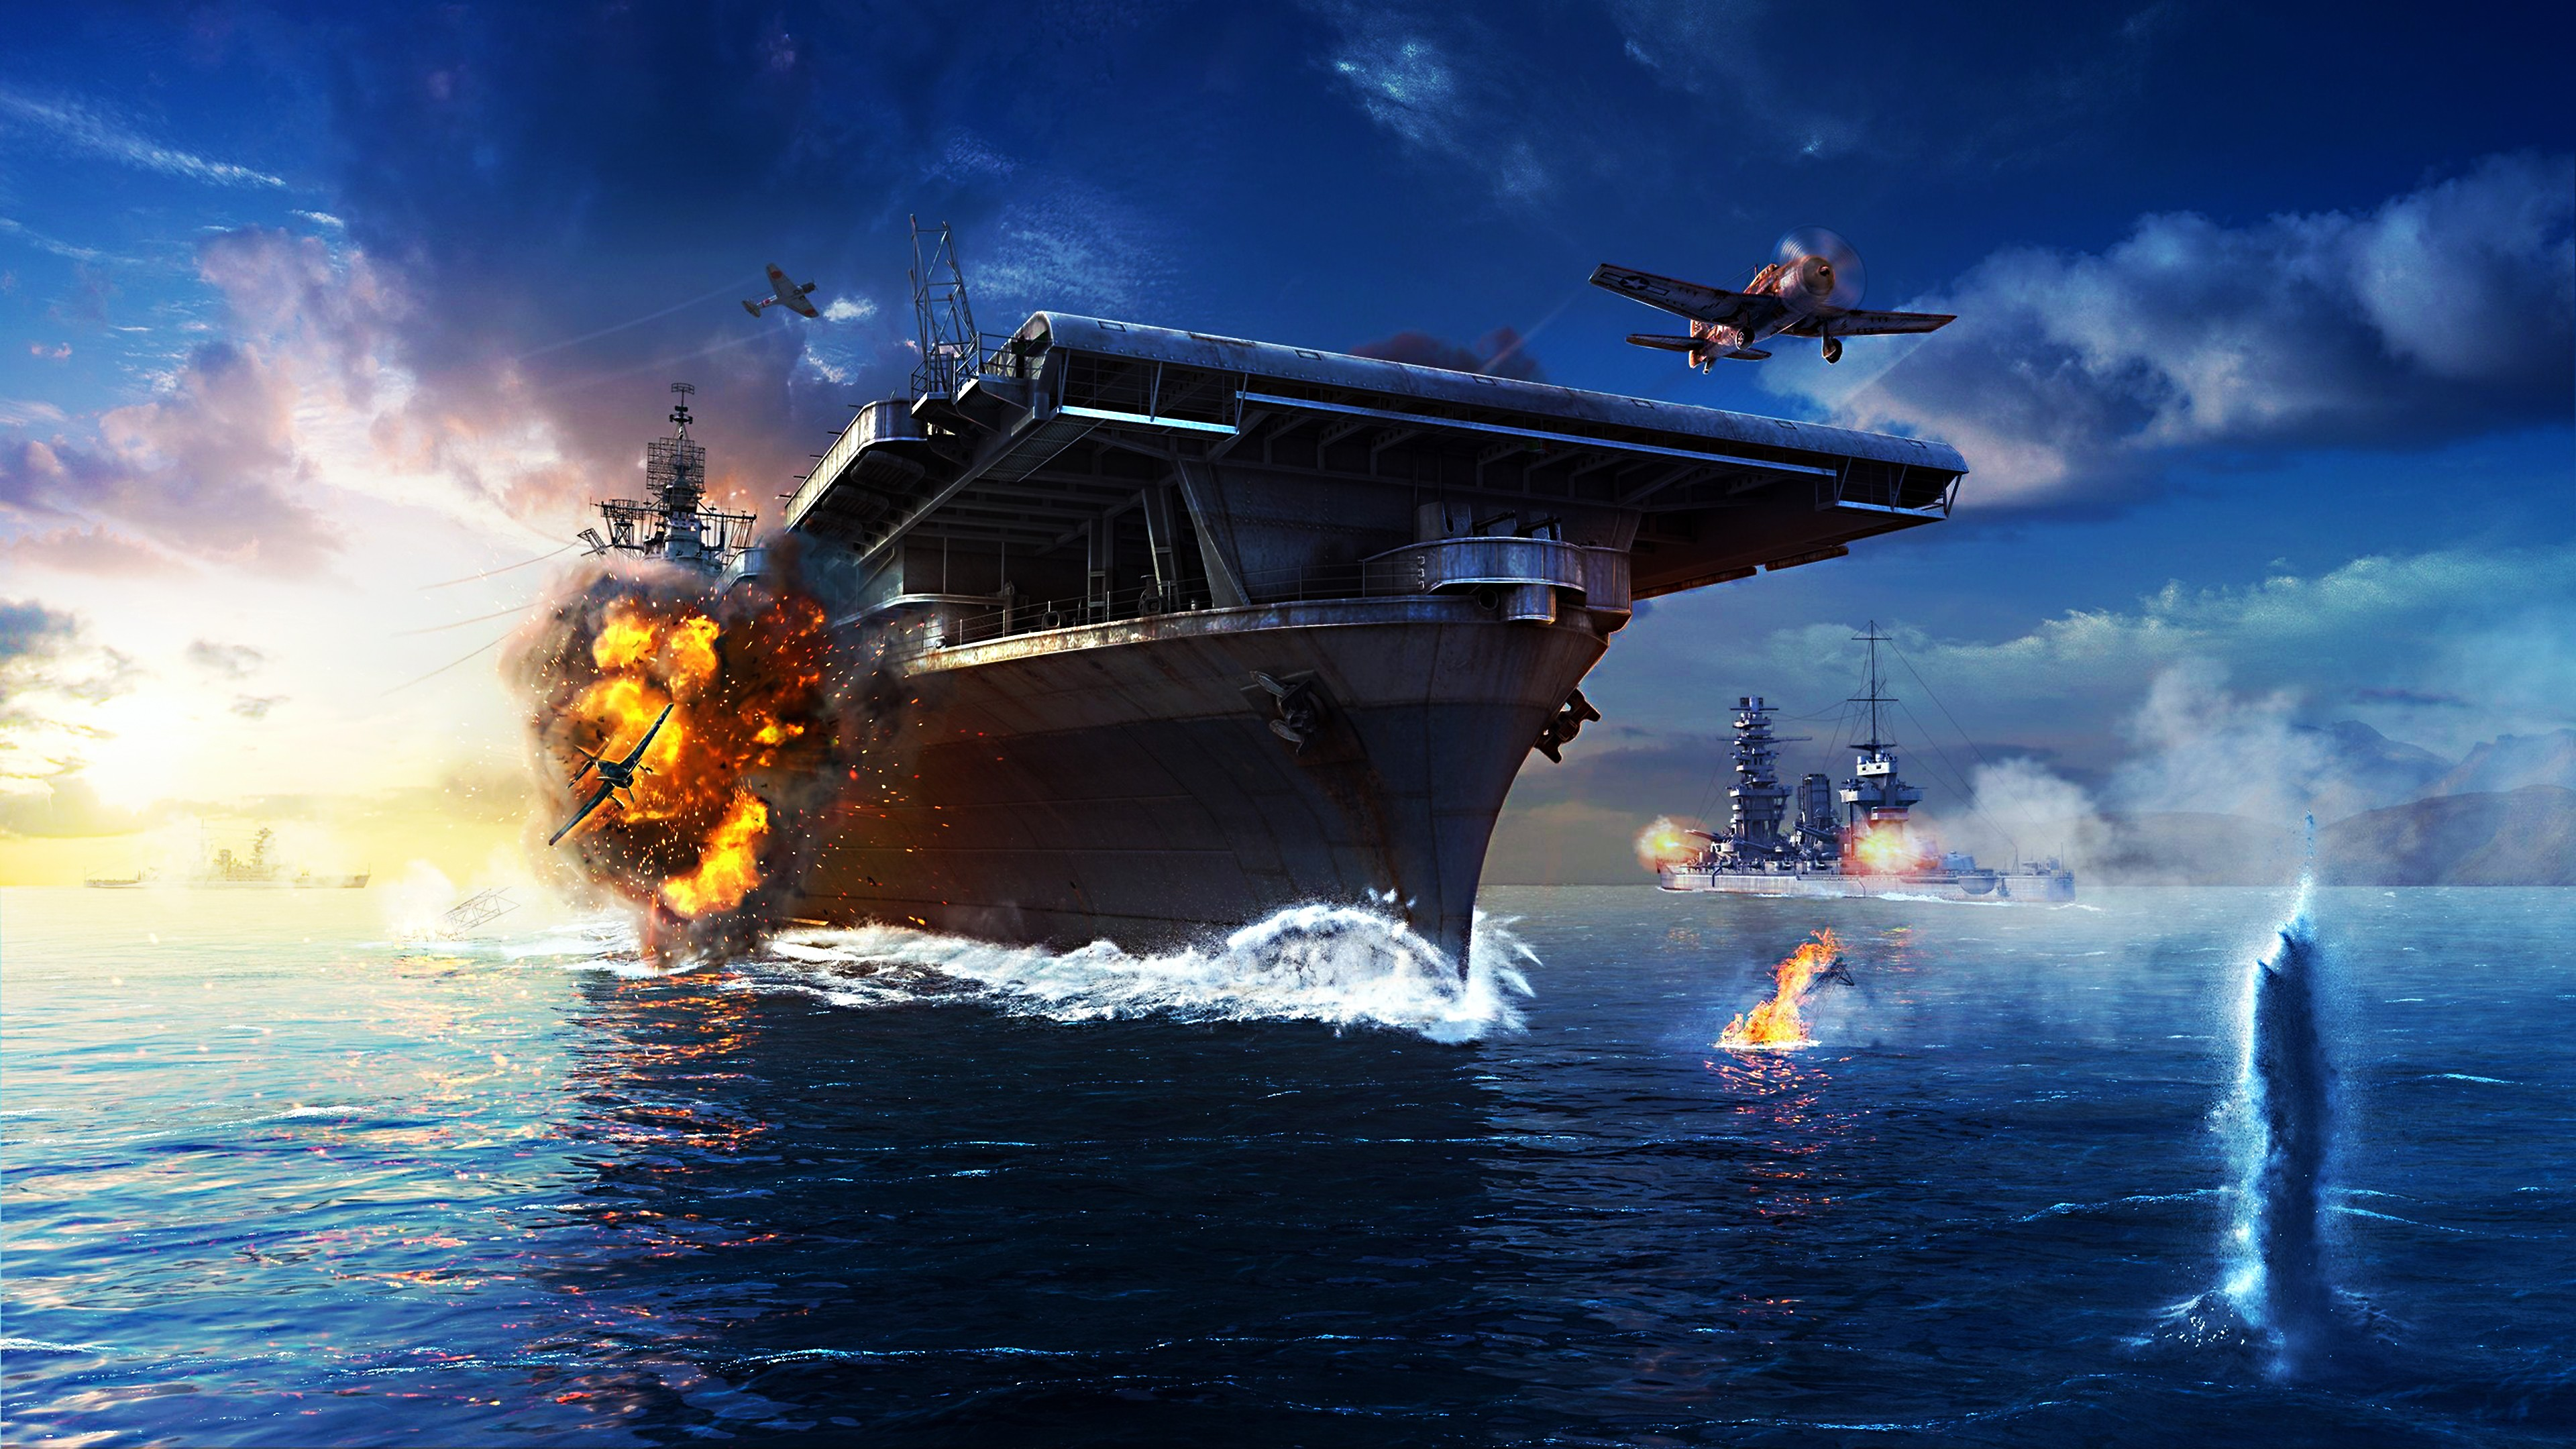 Wallpaper World Of Warships Game Mmorpg Simulator Sea Water Battle Fire Ship Storm Best Games Of 2016 Games 10324 Page 2